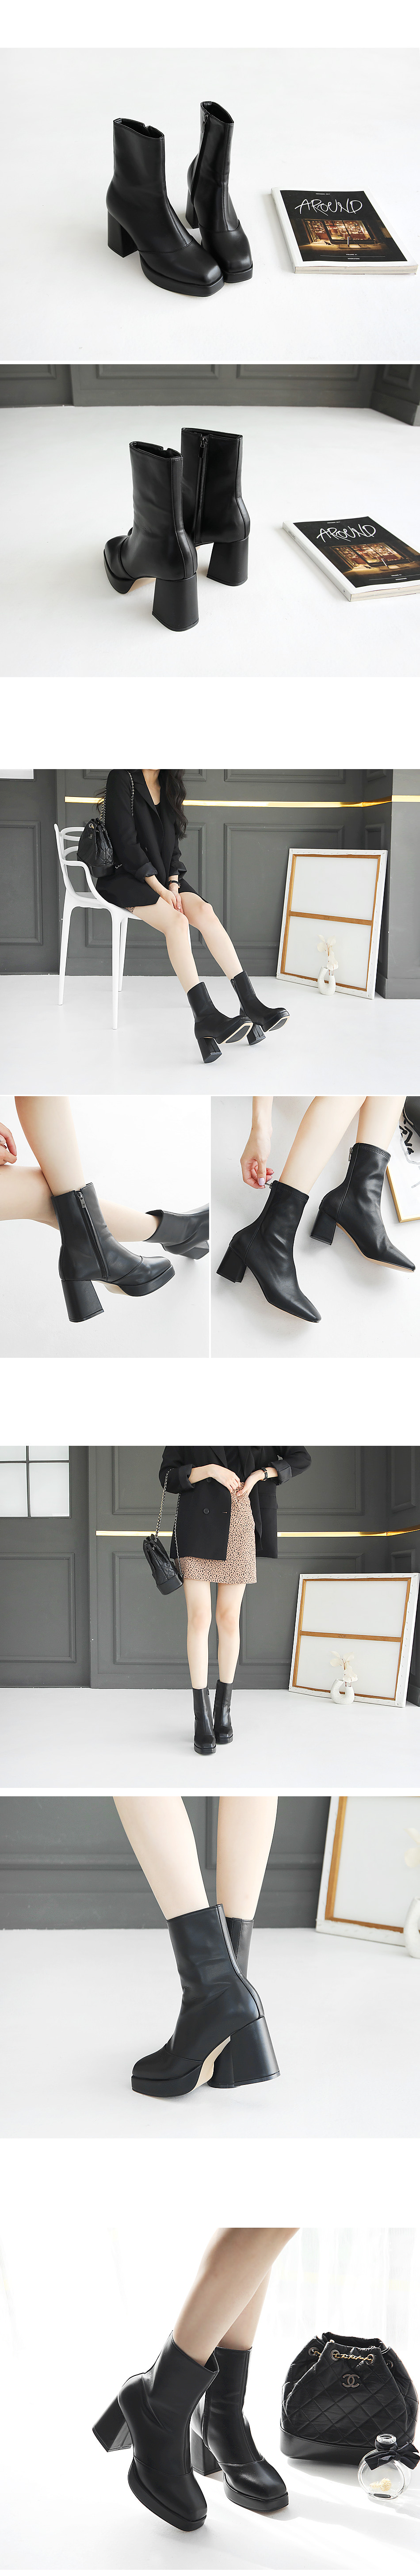 Tejia Heirloom Ankle Boots 8cm